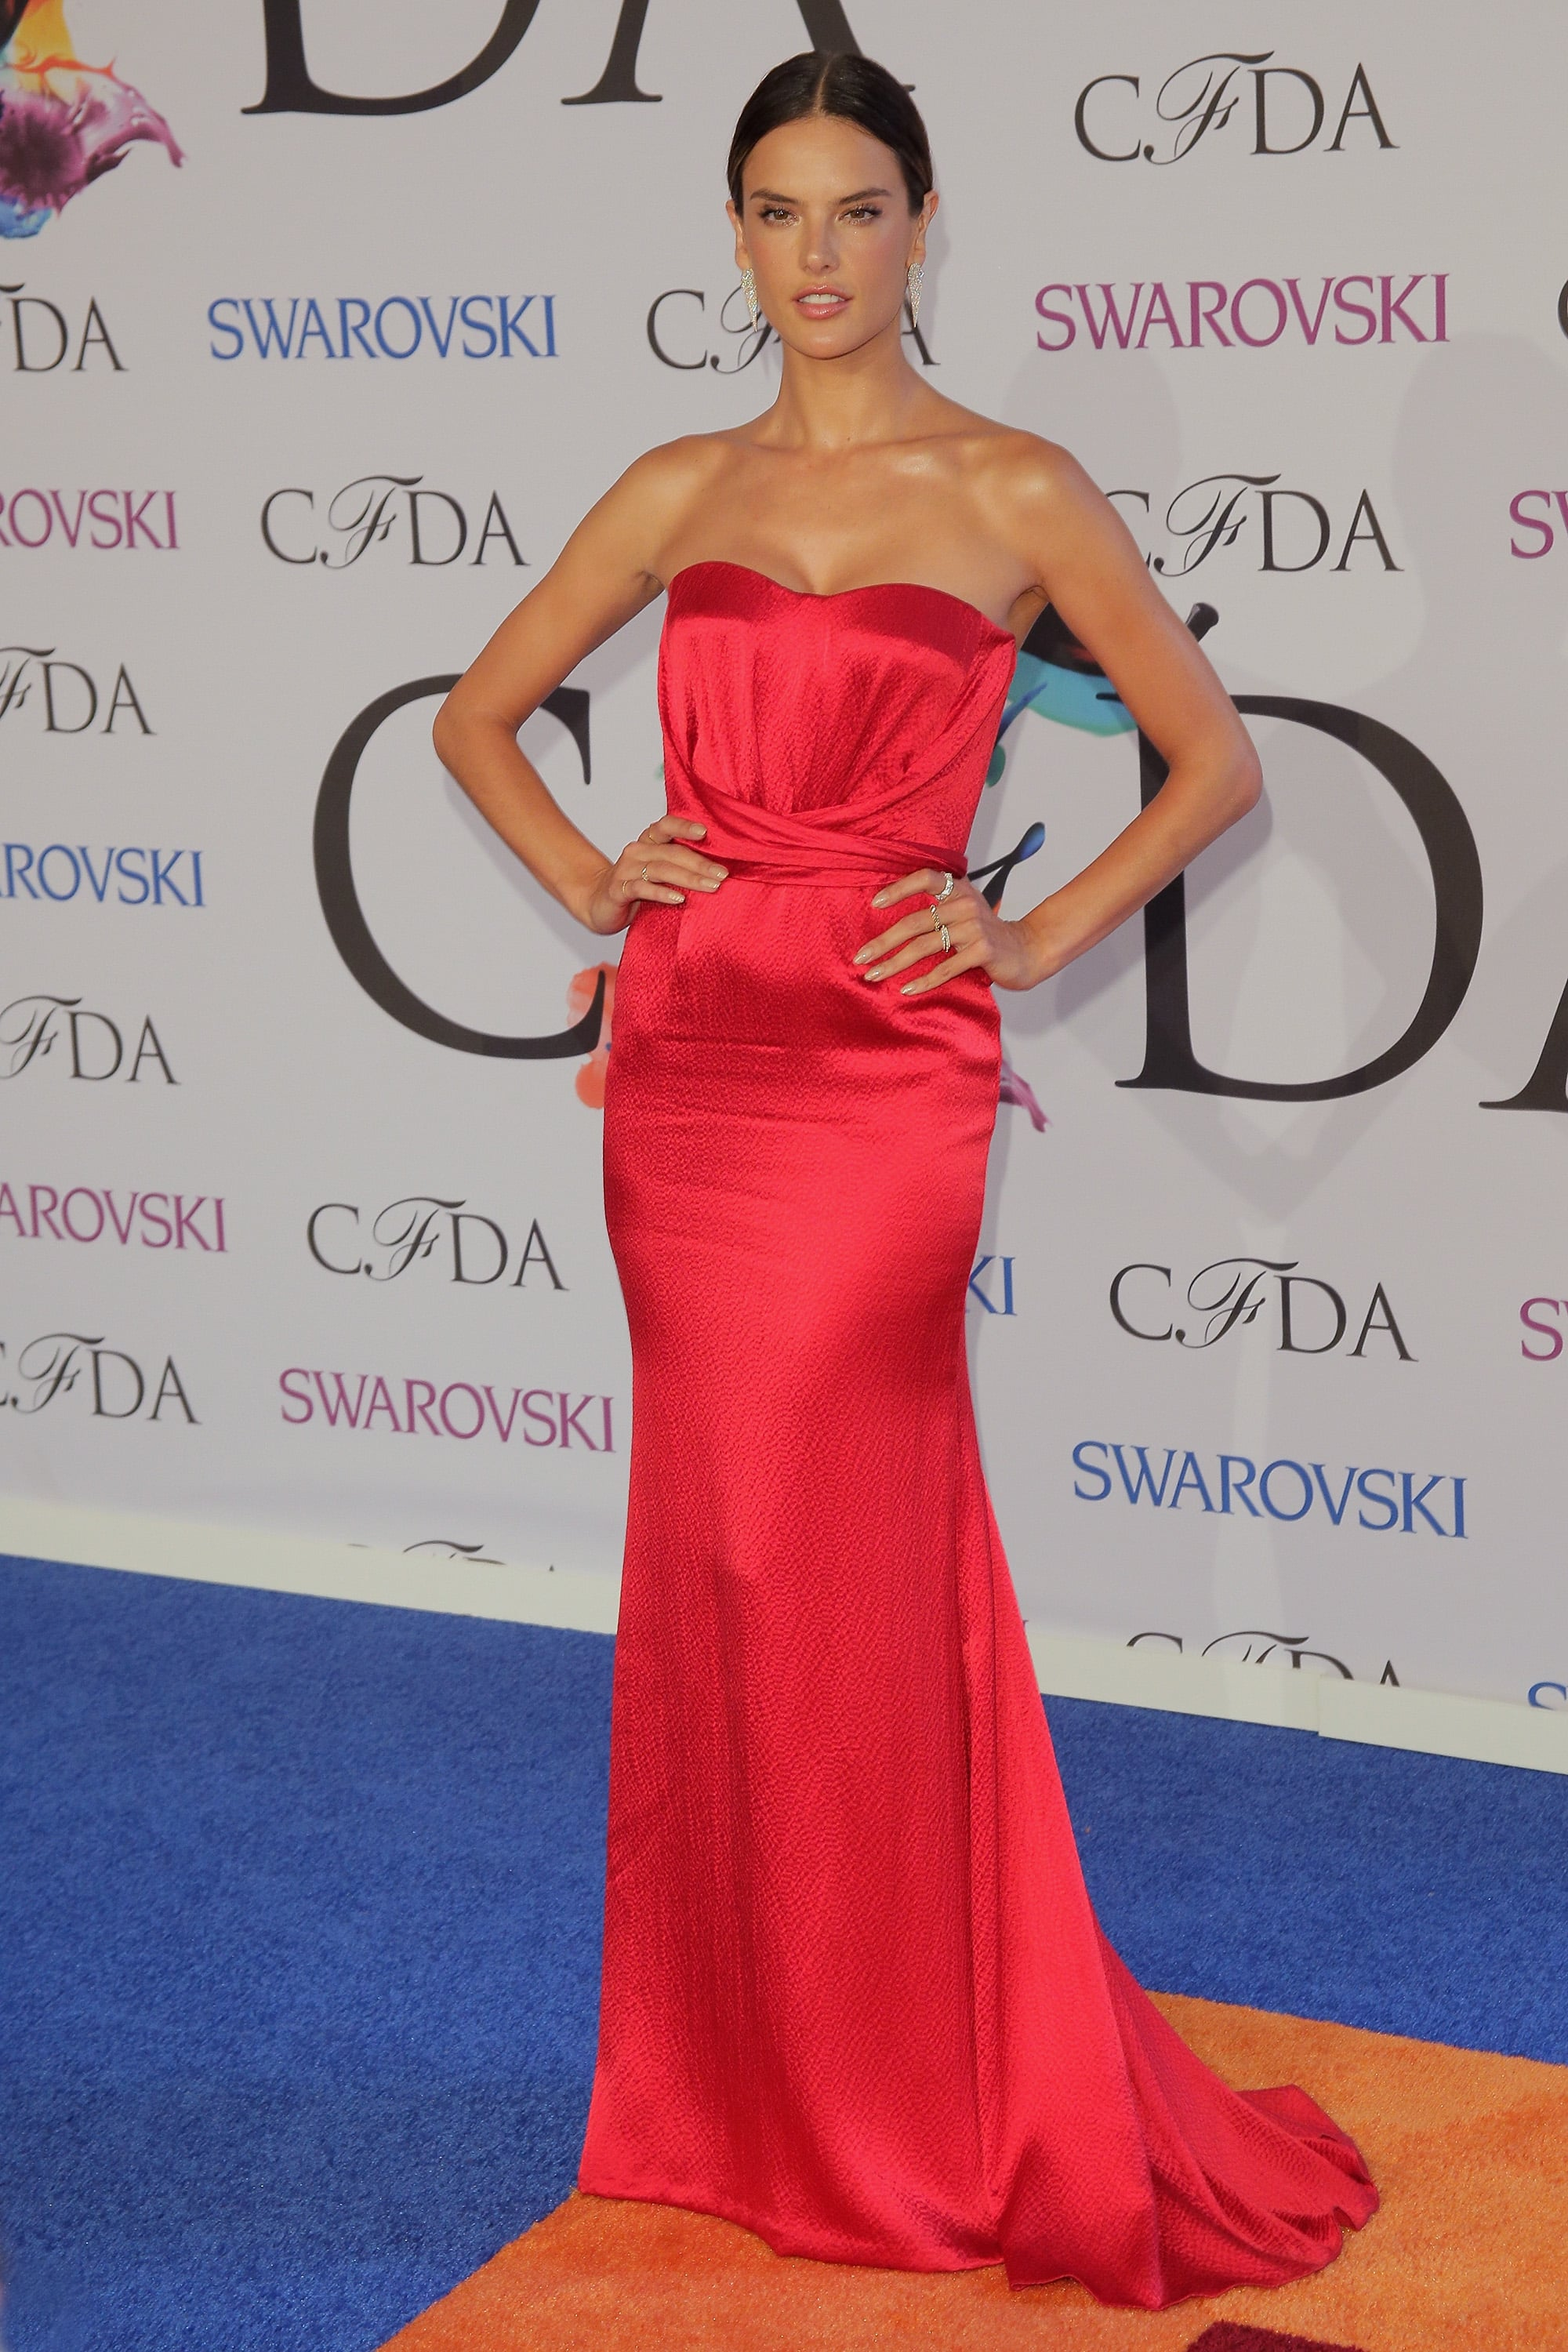 Alessandra Ambrosio at the 2014 CFDA Awards